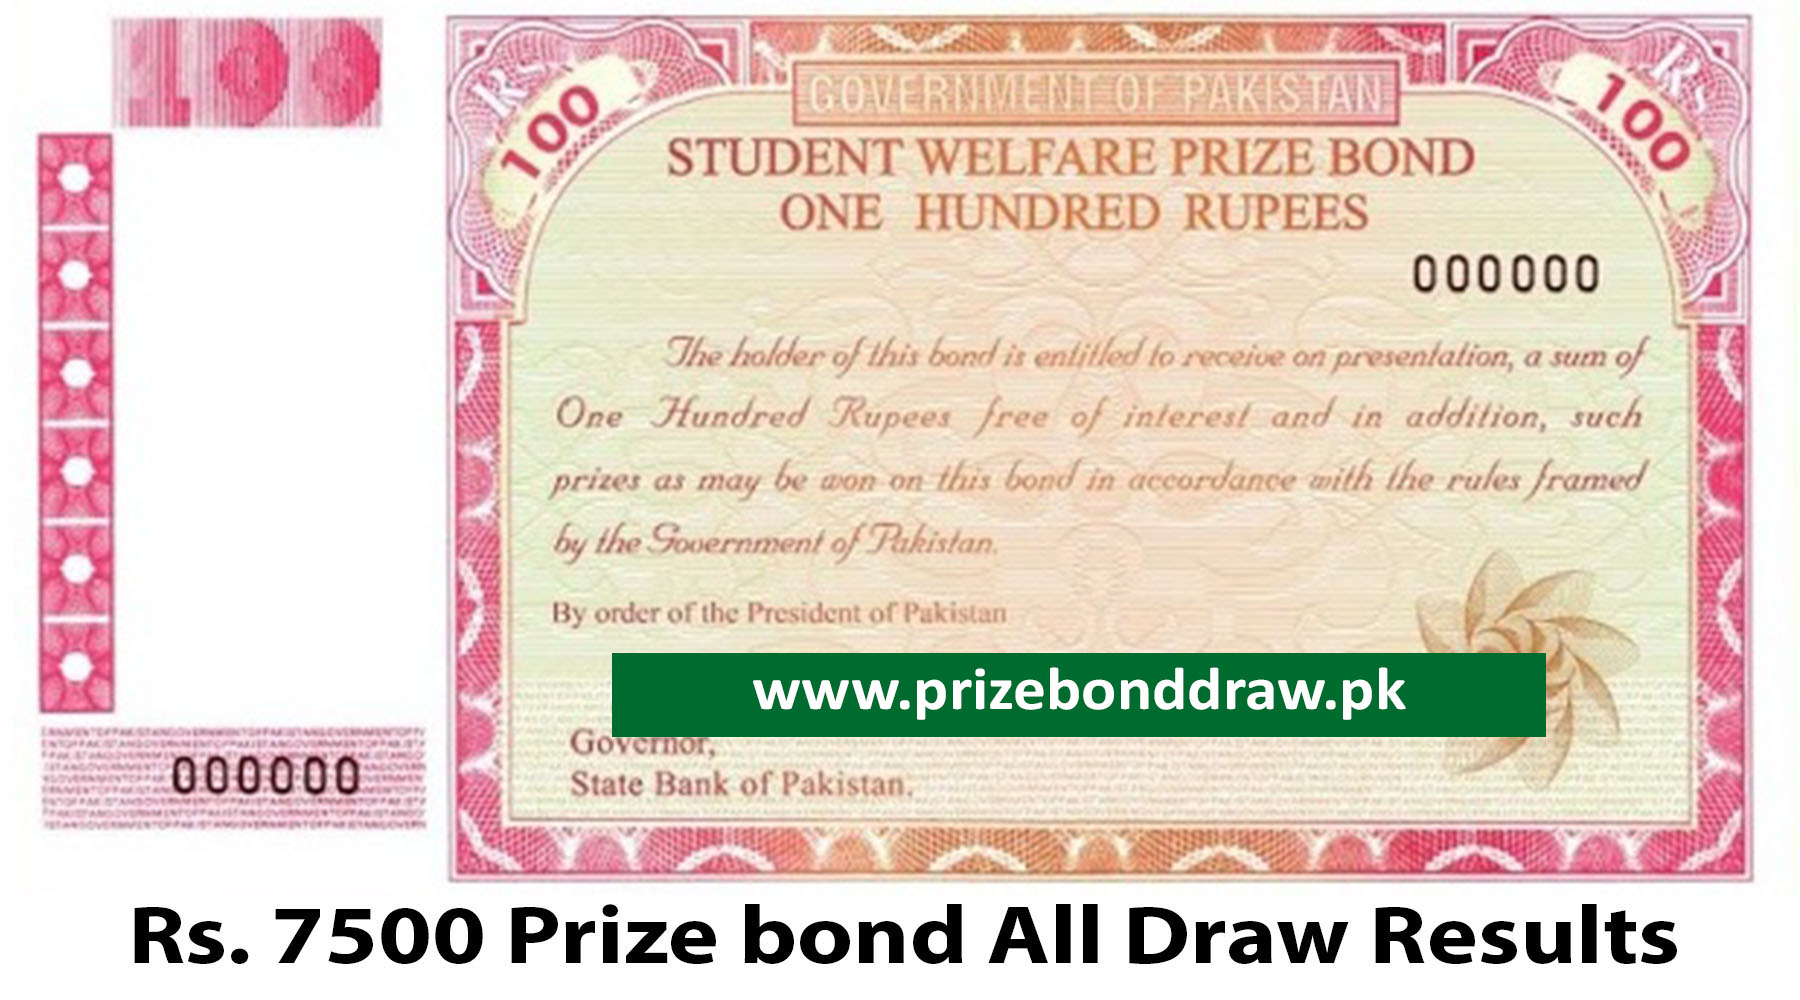 Rs. 100 Prize bond Draw All Results